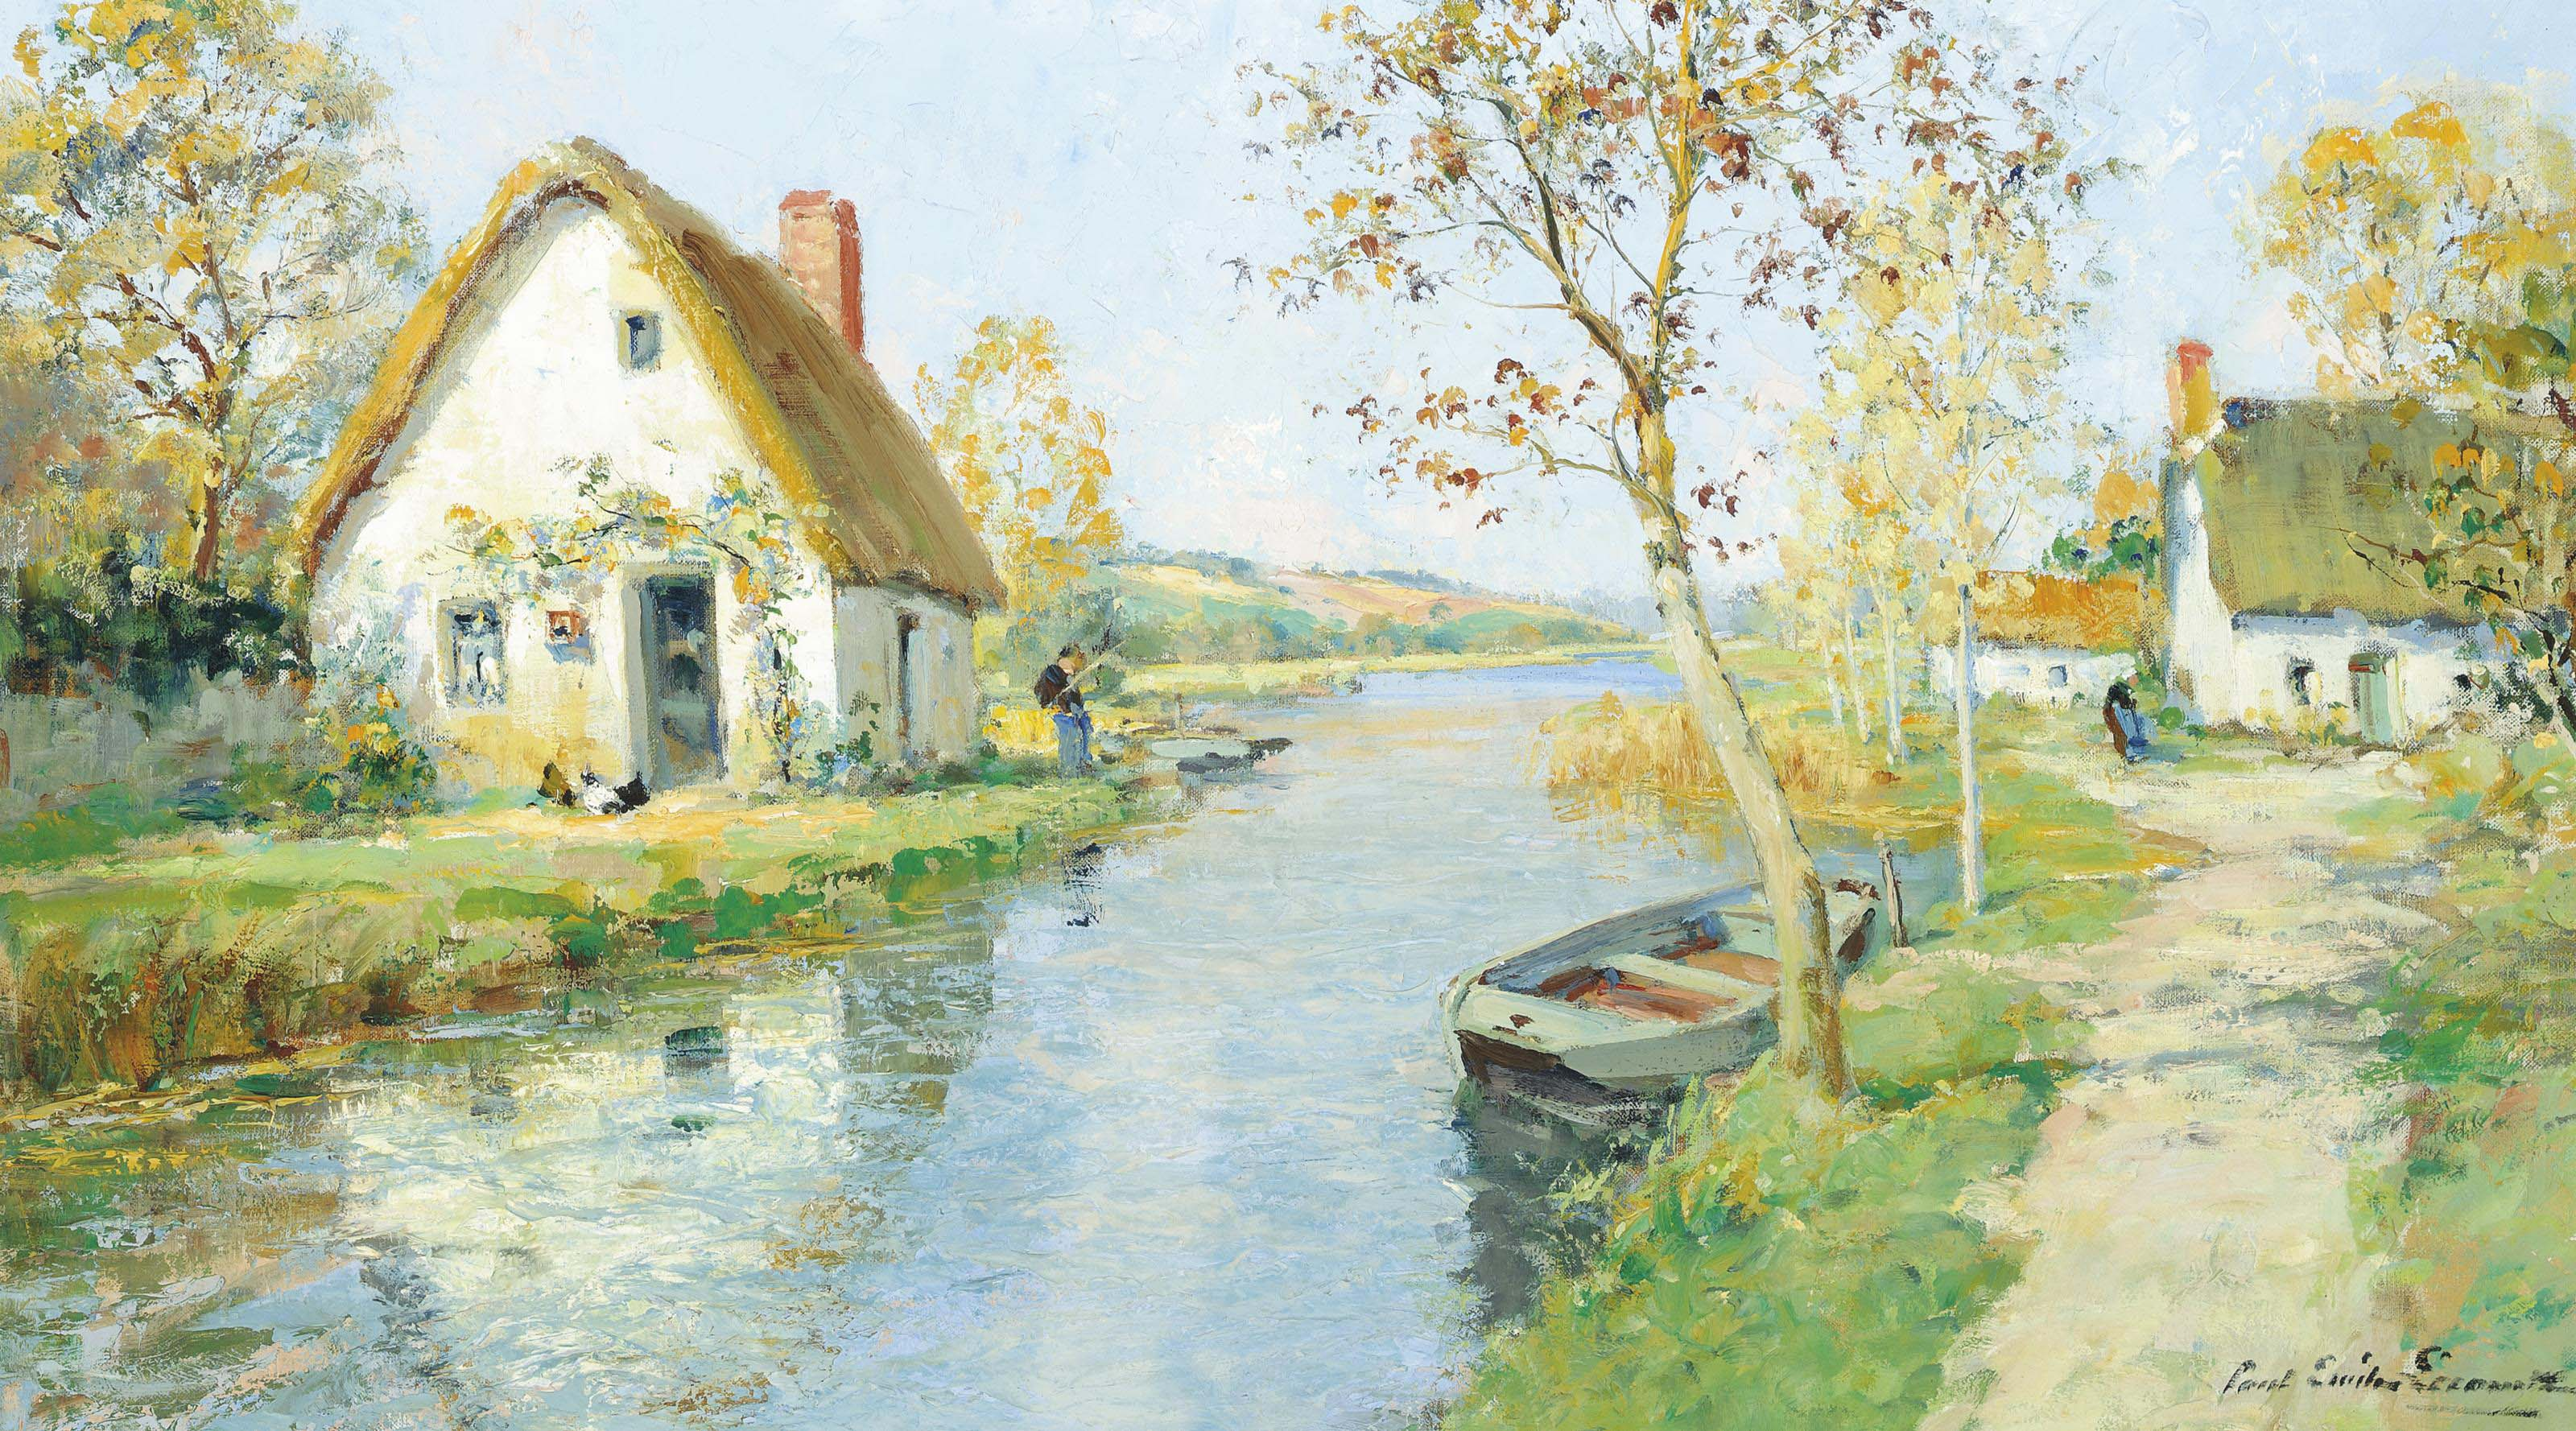 Fishing at a riverside cottage